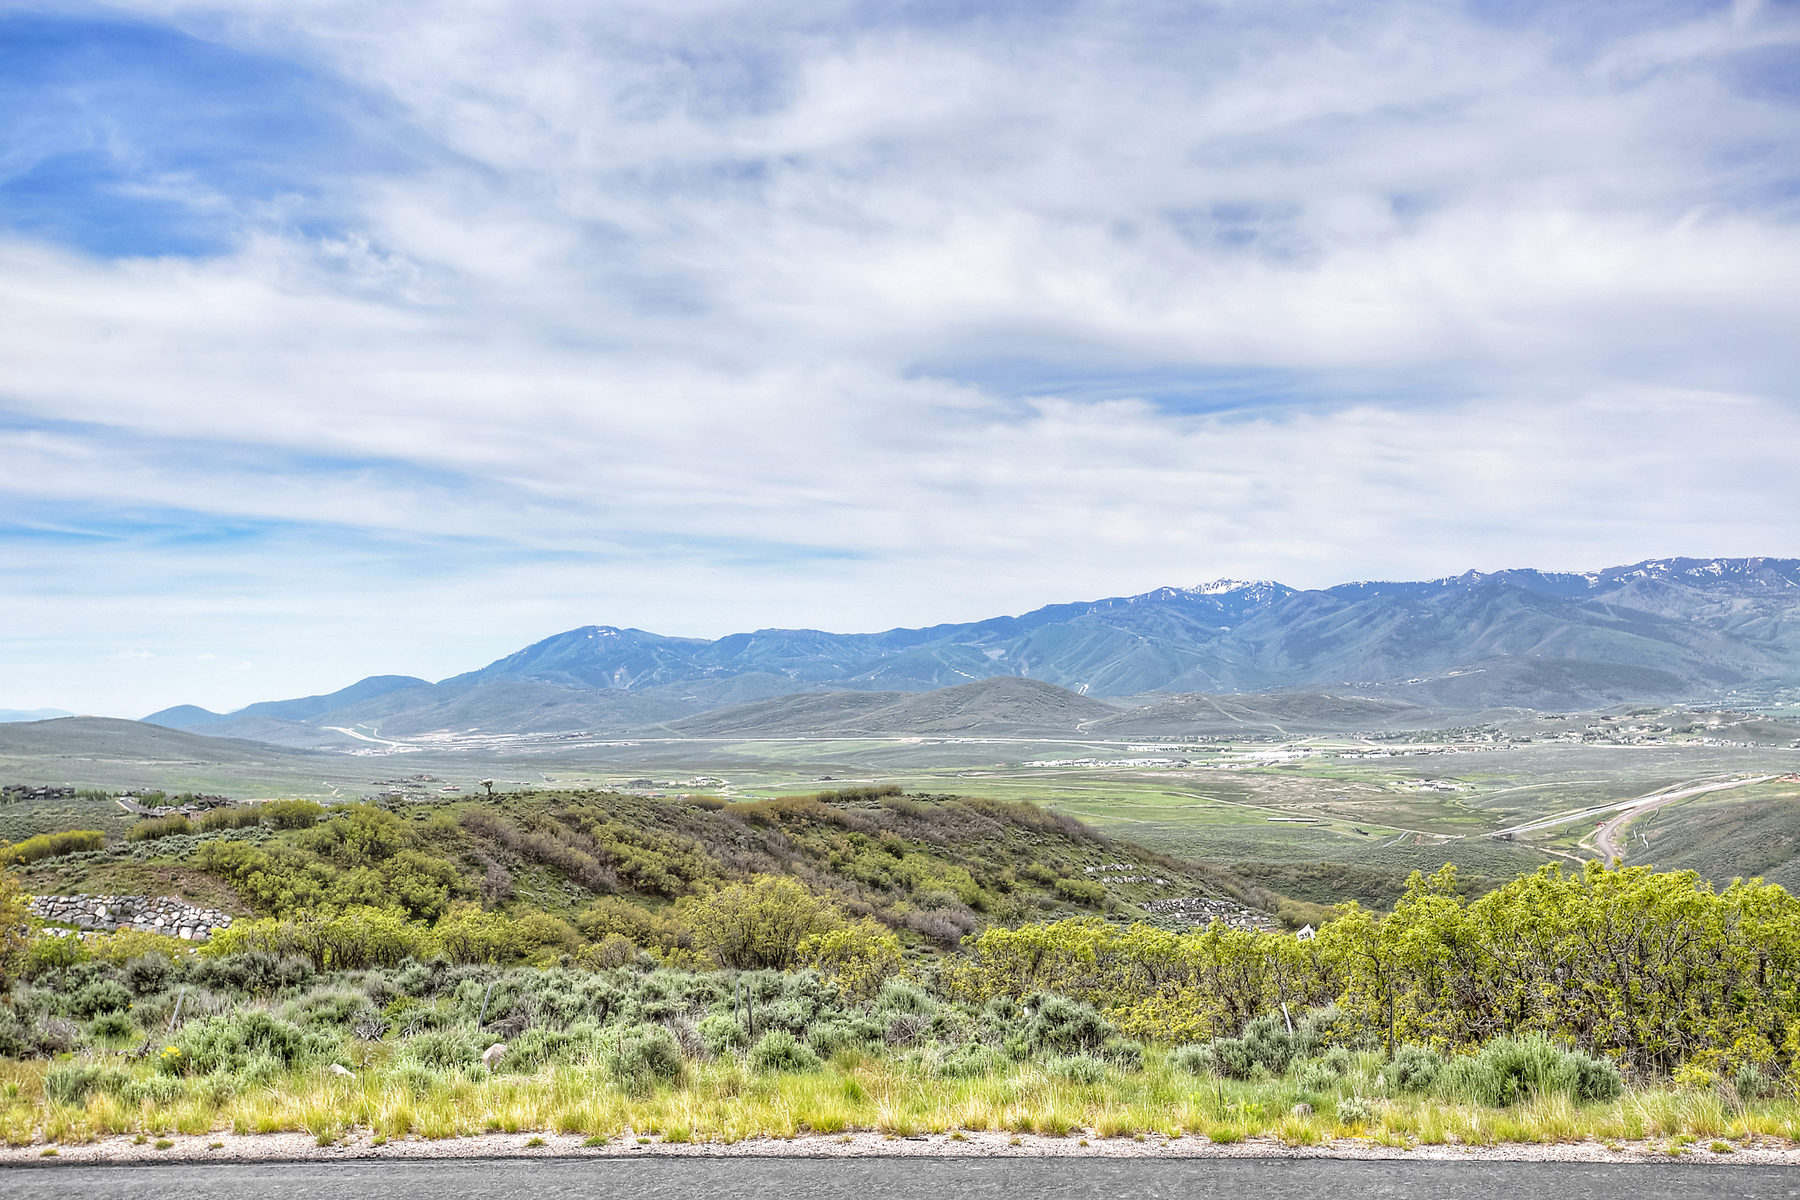 Đất đai vì Bán tại Phenomenal Views From This Homesite 8984 N Hidden Hill Lp Lot 4 Park City, Utah, 84098 Hoa Kỳ